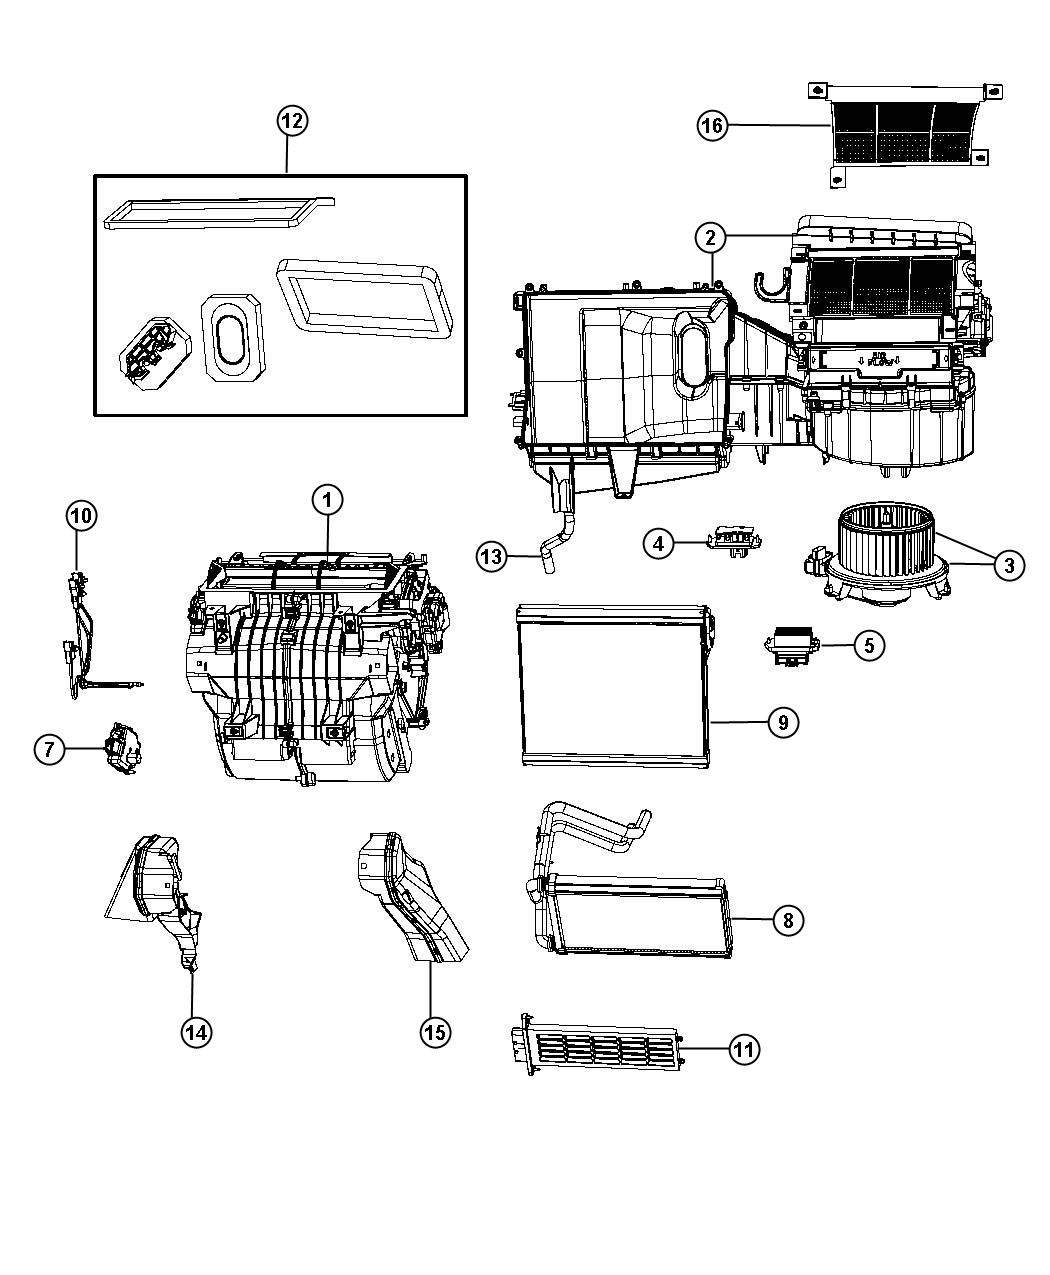 95 Dodge Avenger Wiring Diagram